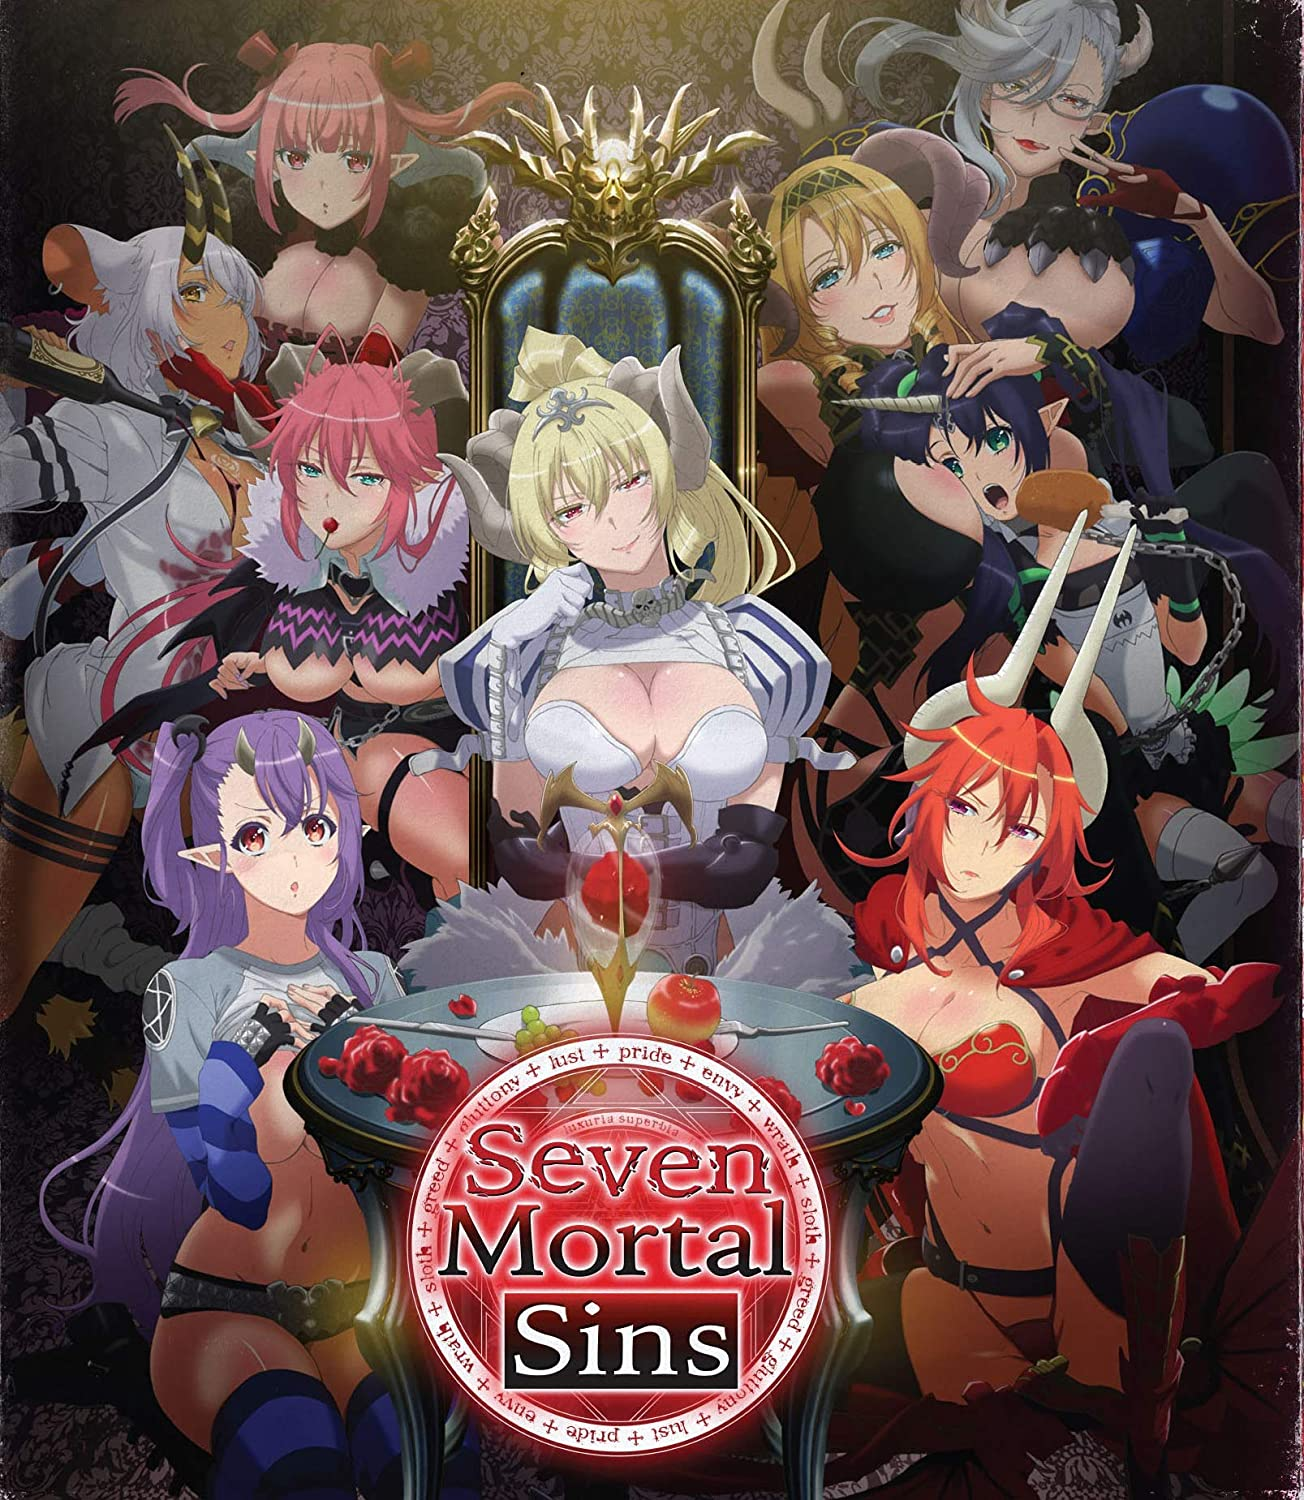 Amazon Com Seven Mortal Sins The Complete Series Blu Ray Madeleine Morris Nicole Endicott Annabel Thorne Arielle O Neal Brittany Lauda David Dave Trosko Movies Tv